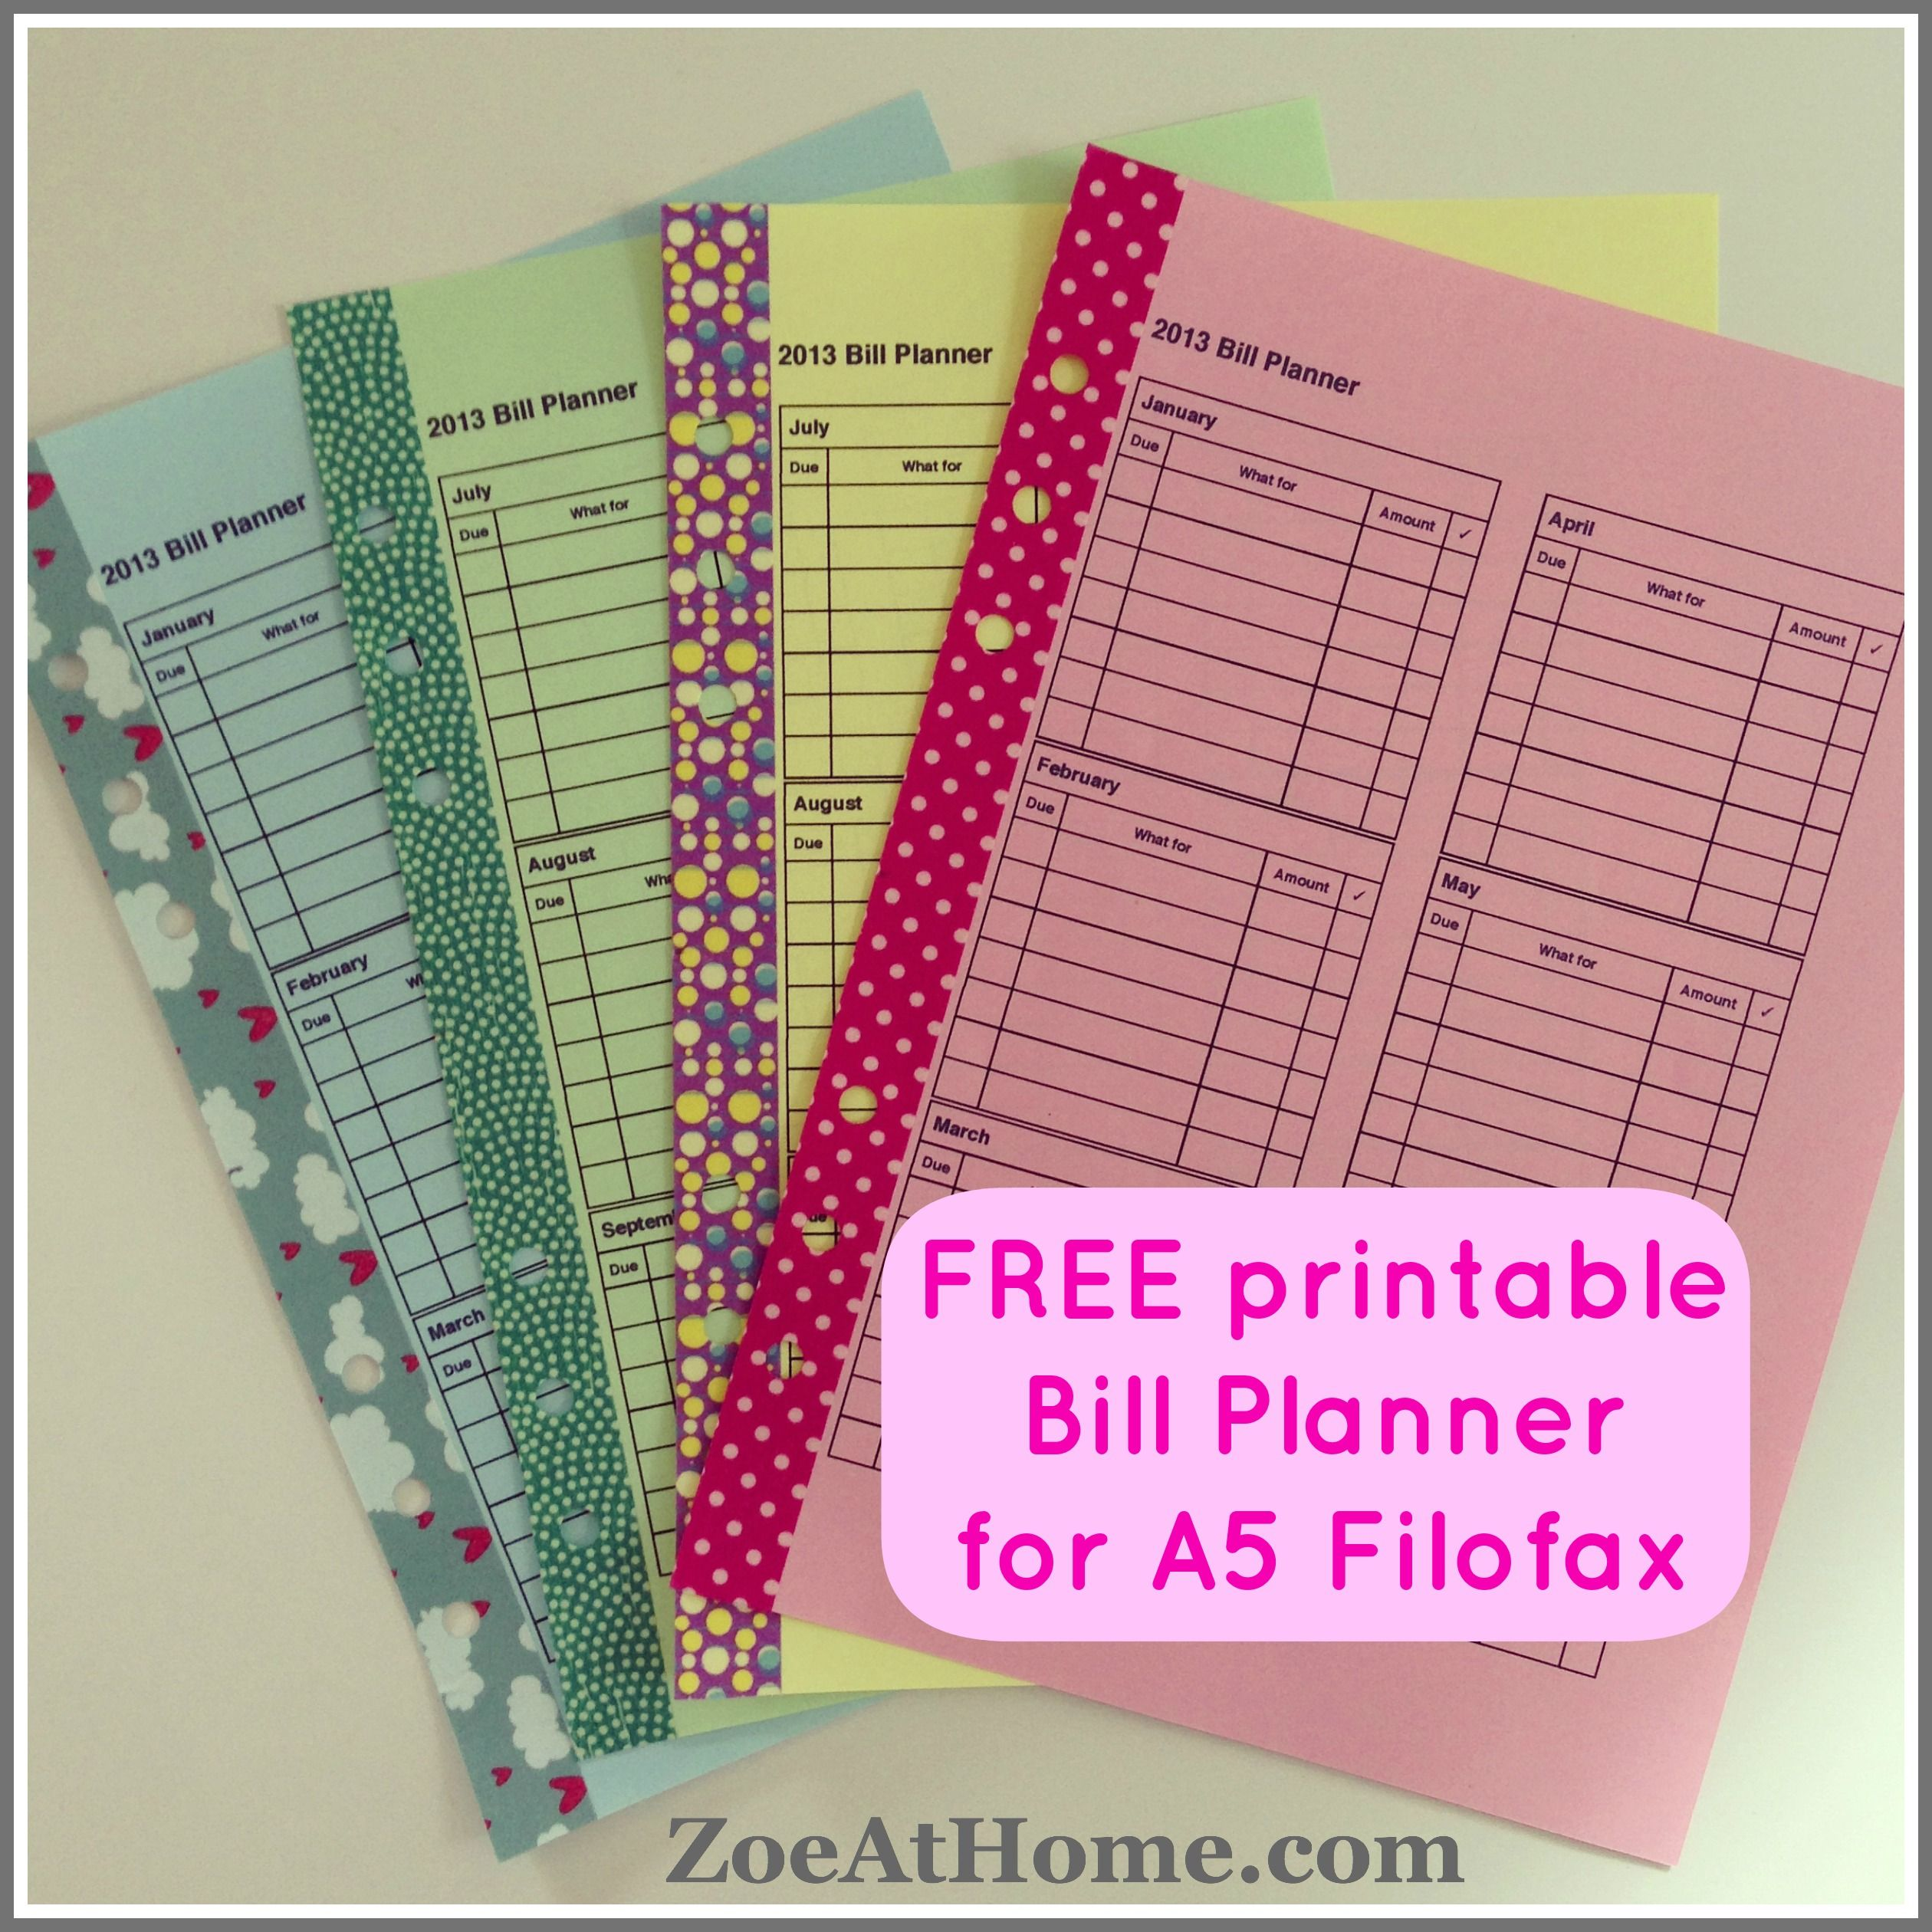 Free Printable Bill Budget Planner For A5 Filofax Could Be Used In A Home Management Binder